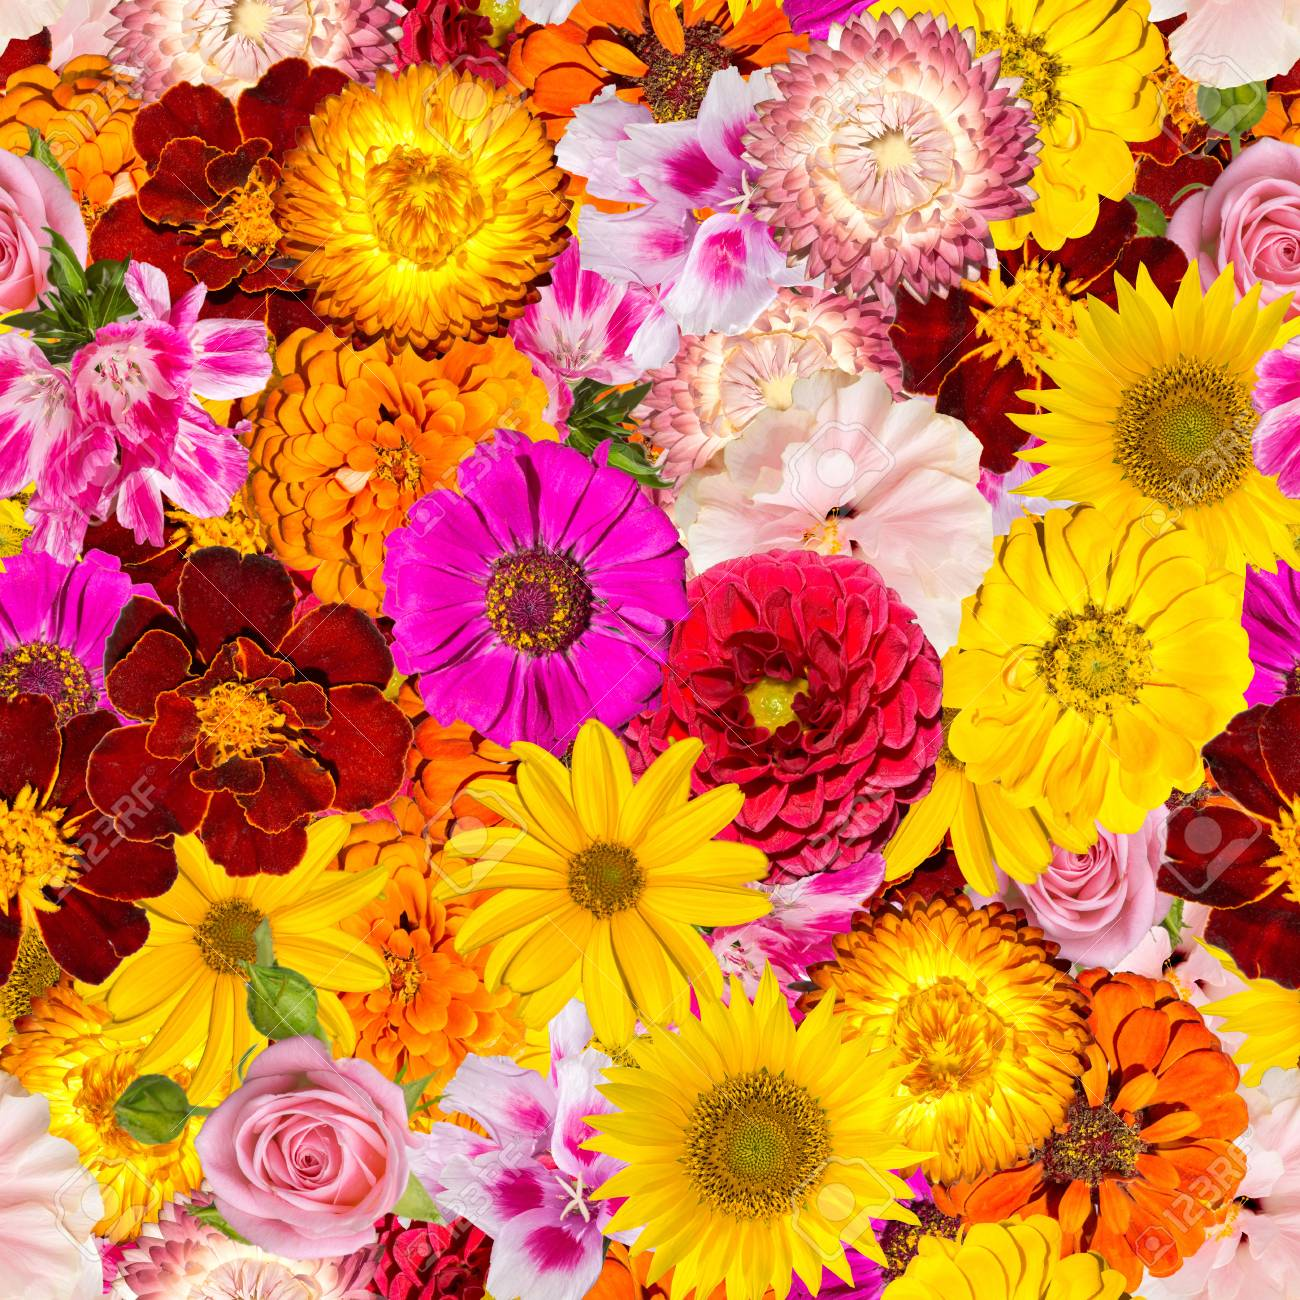 Pink-roses-and-sunflowers